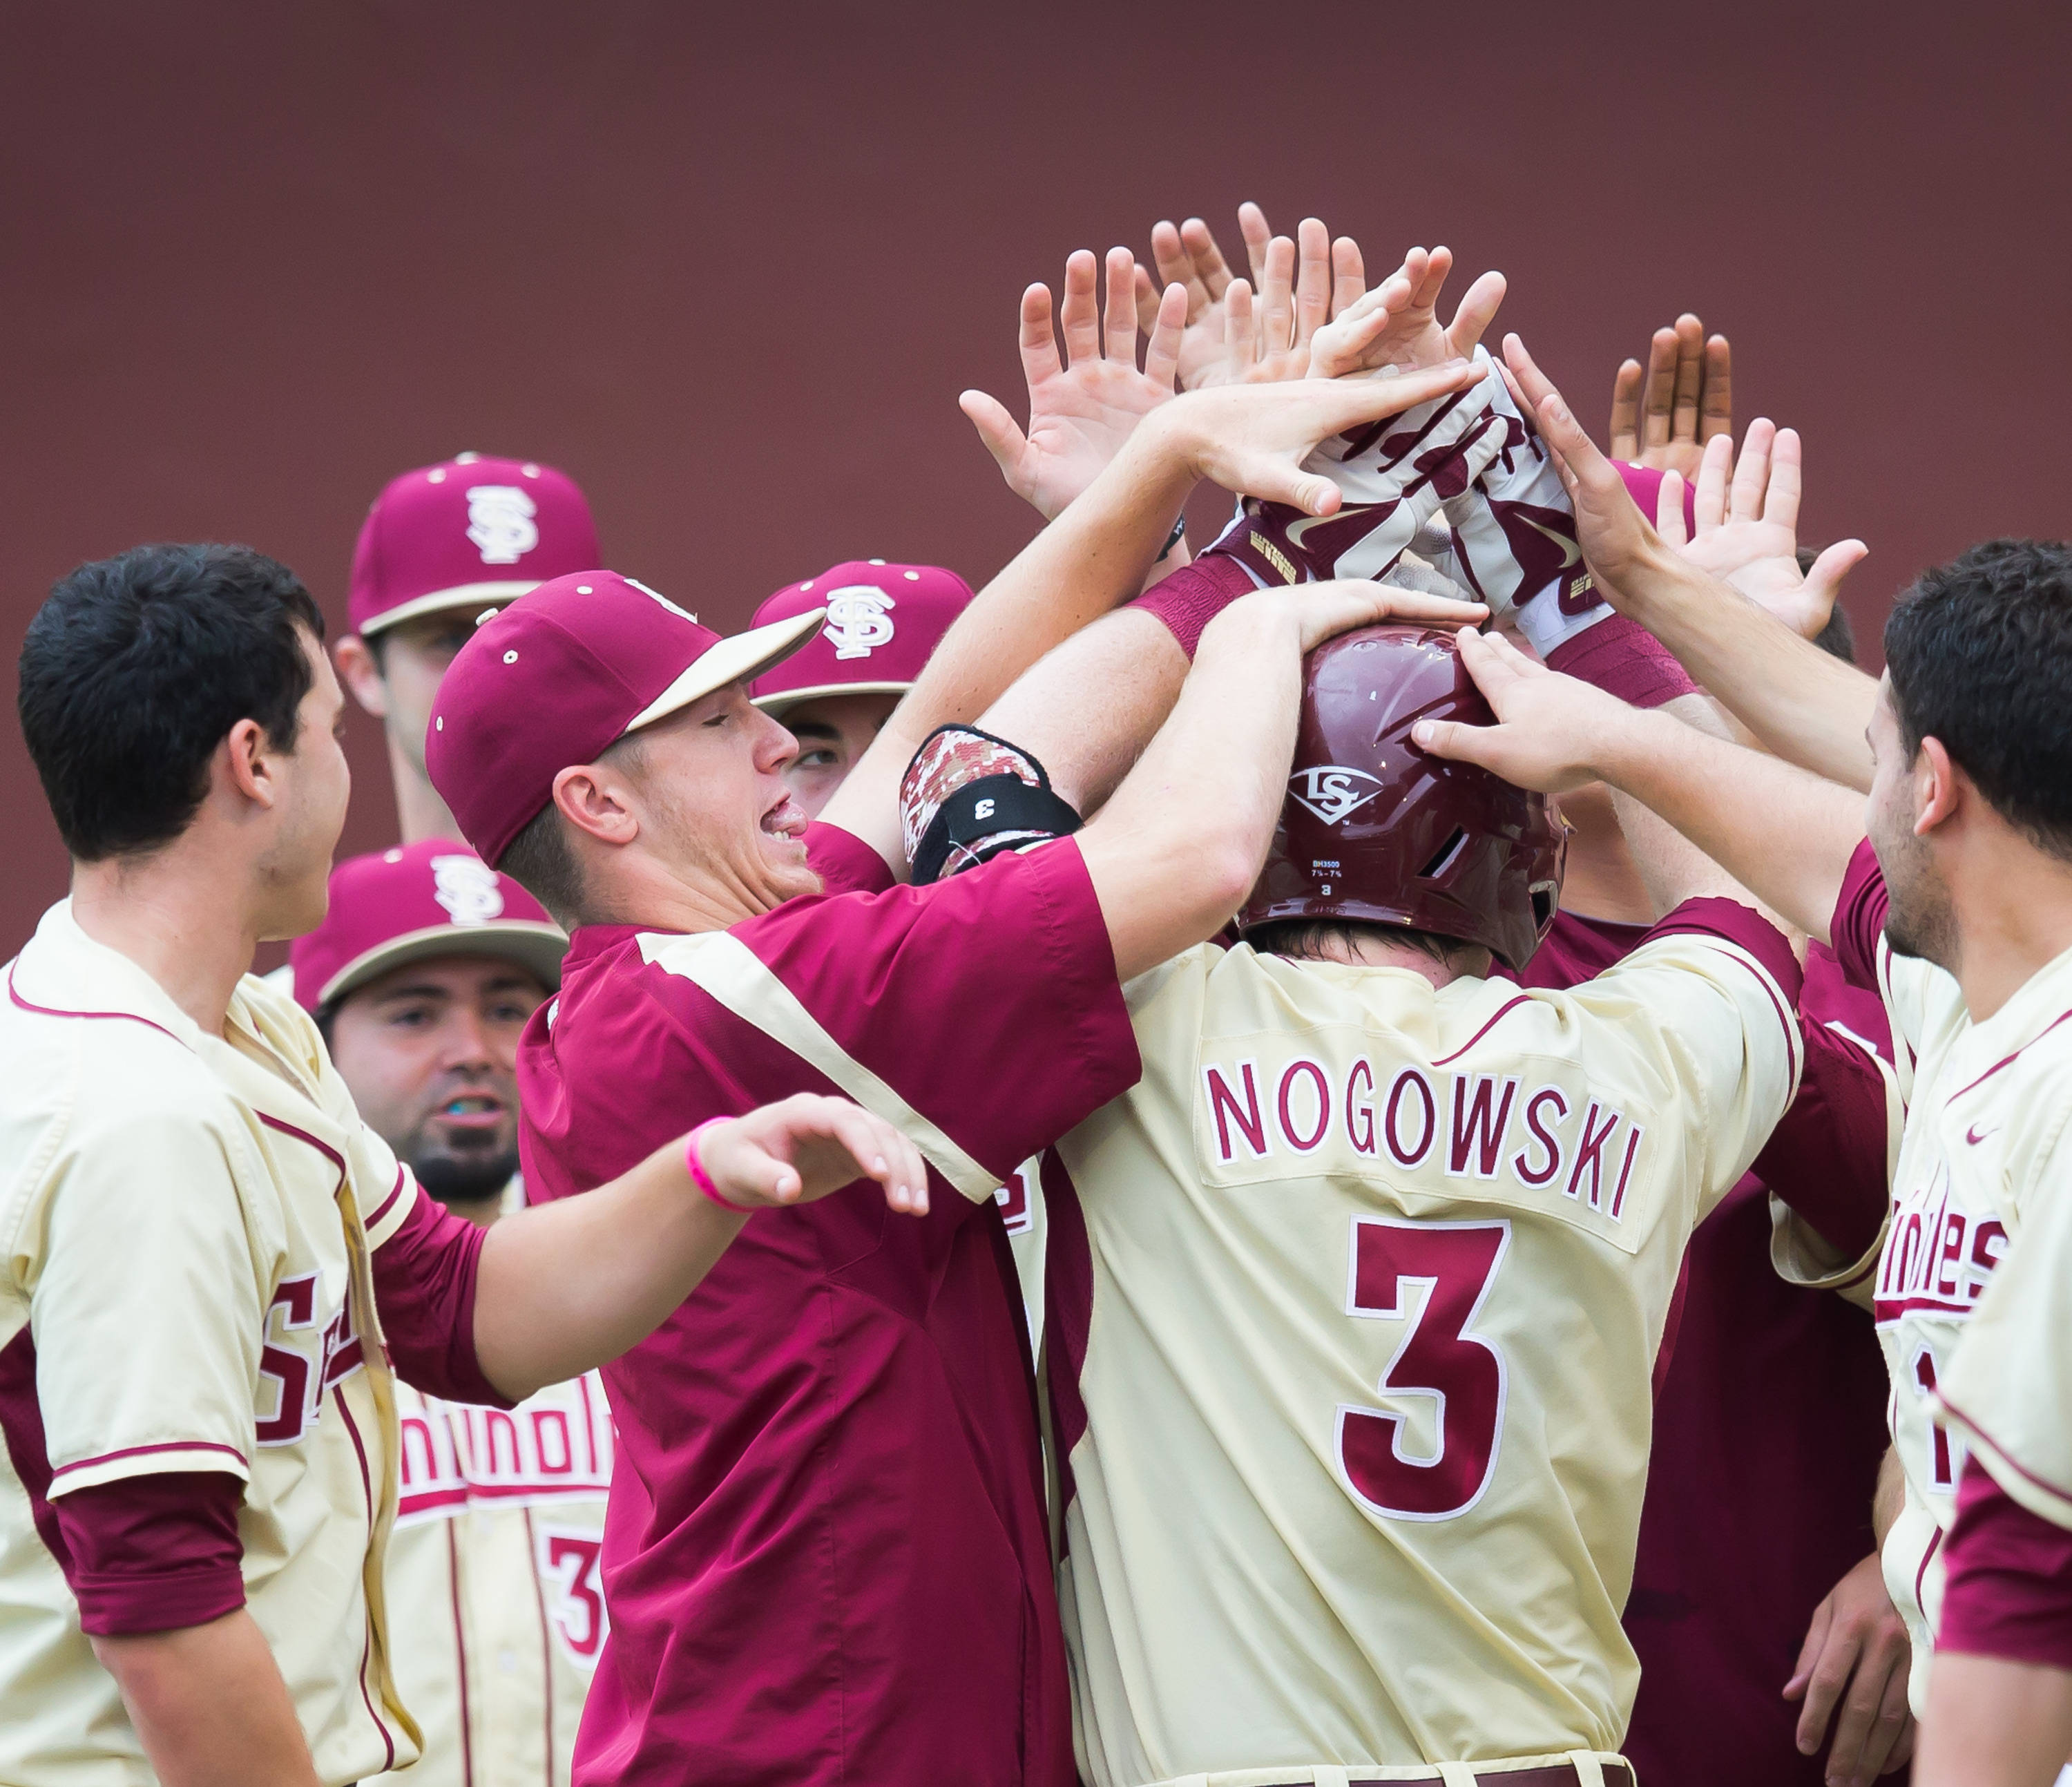 John Nogowski (3) is mobbed by his teammates after his 1st inning homer.